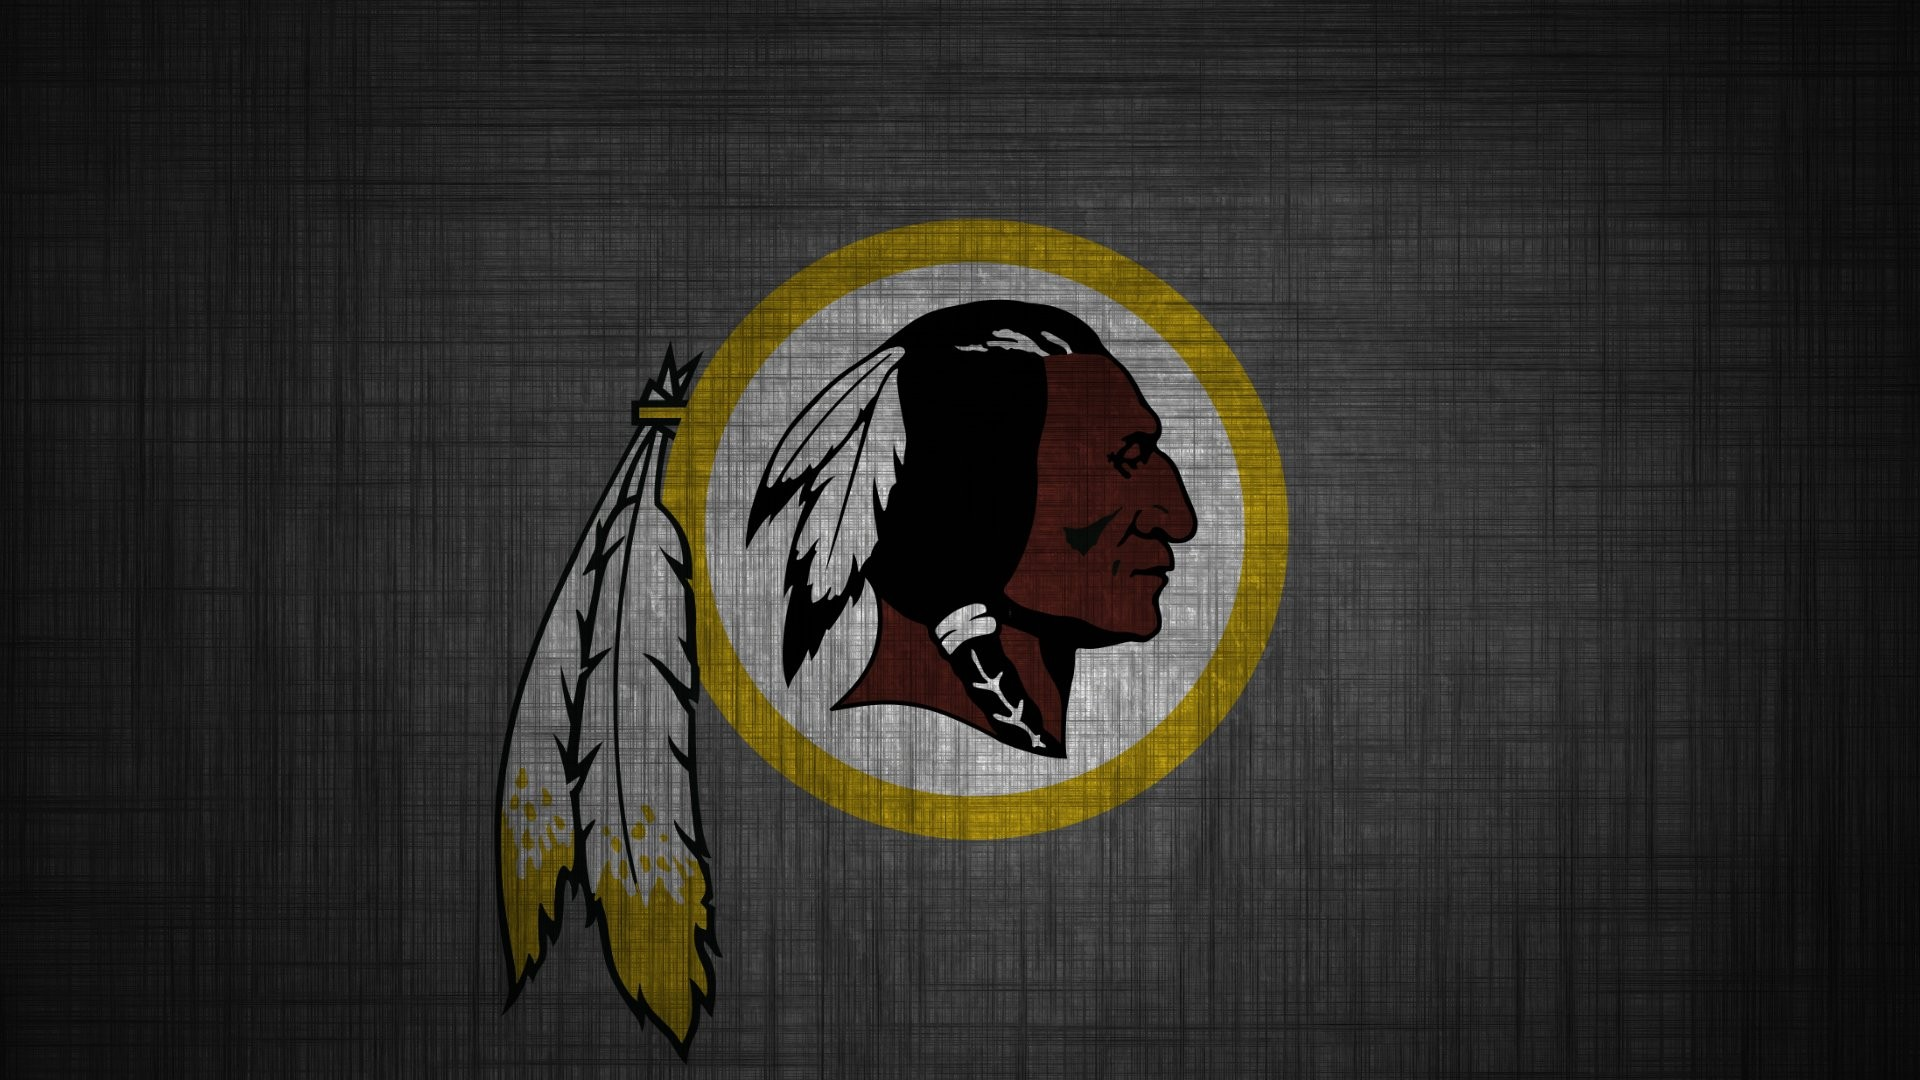 HD Backgrounds Washington Redskins 2020 NFL Football Wallpapers 1920x1080